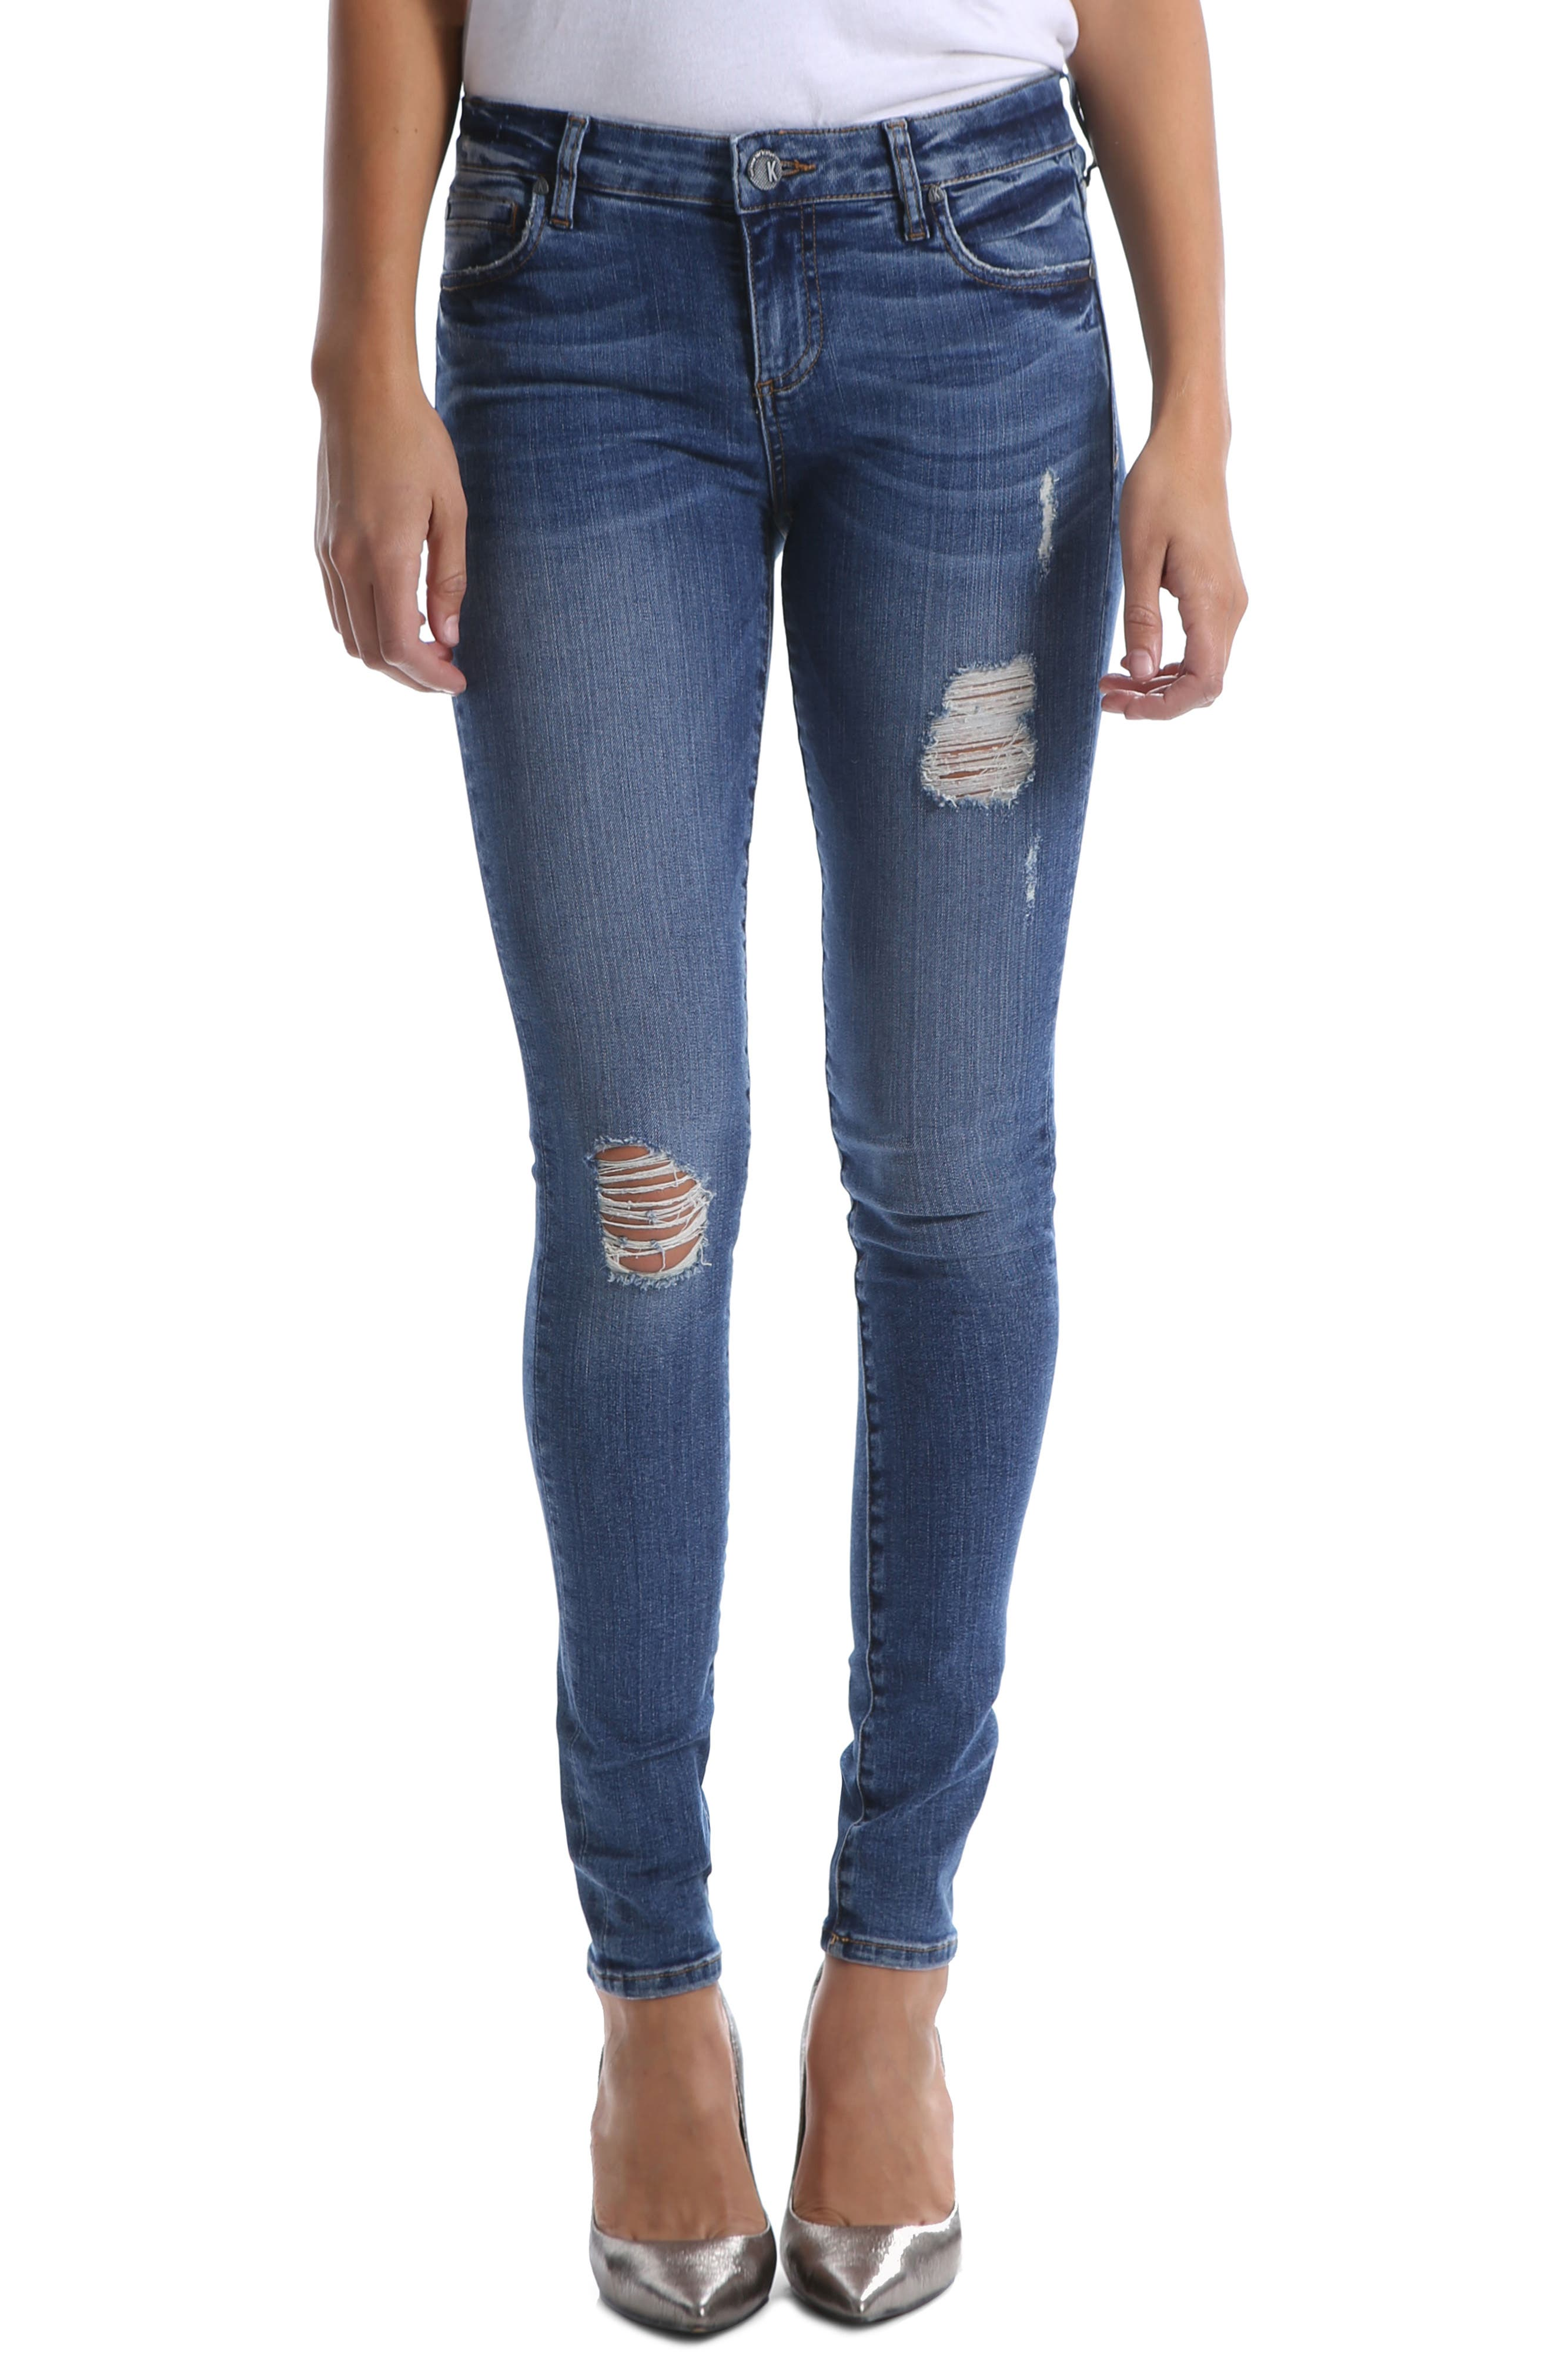 Kut From The Kloth Mia Ripped Toothpick Skinny Jeans